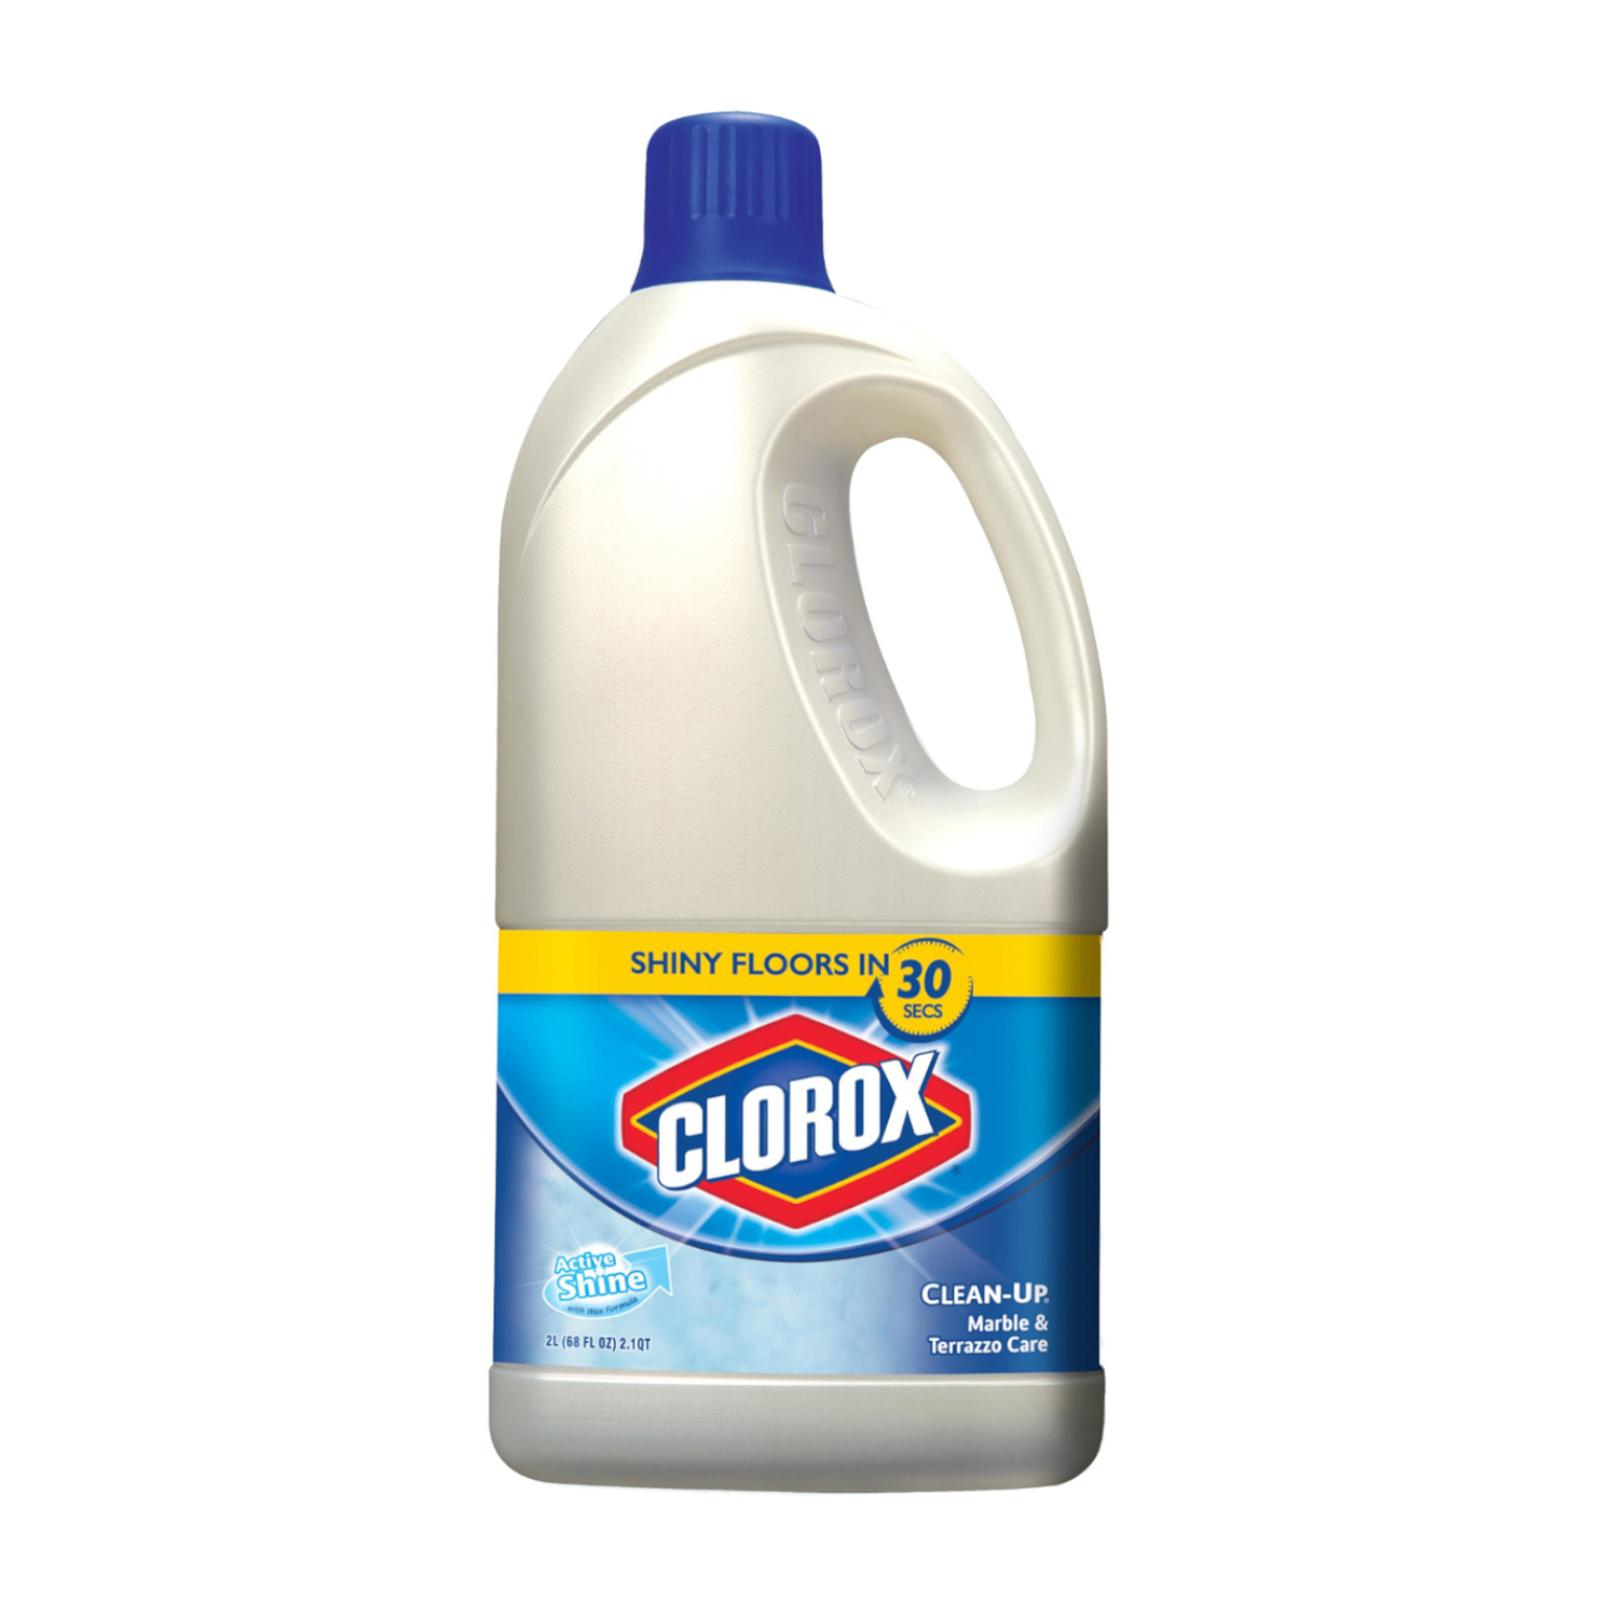 Clorox Clean-Up Cleaner - Marble and Terrazzo Care